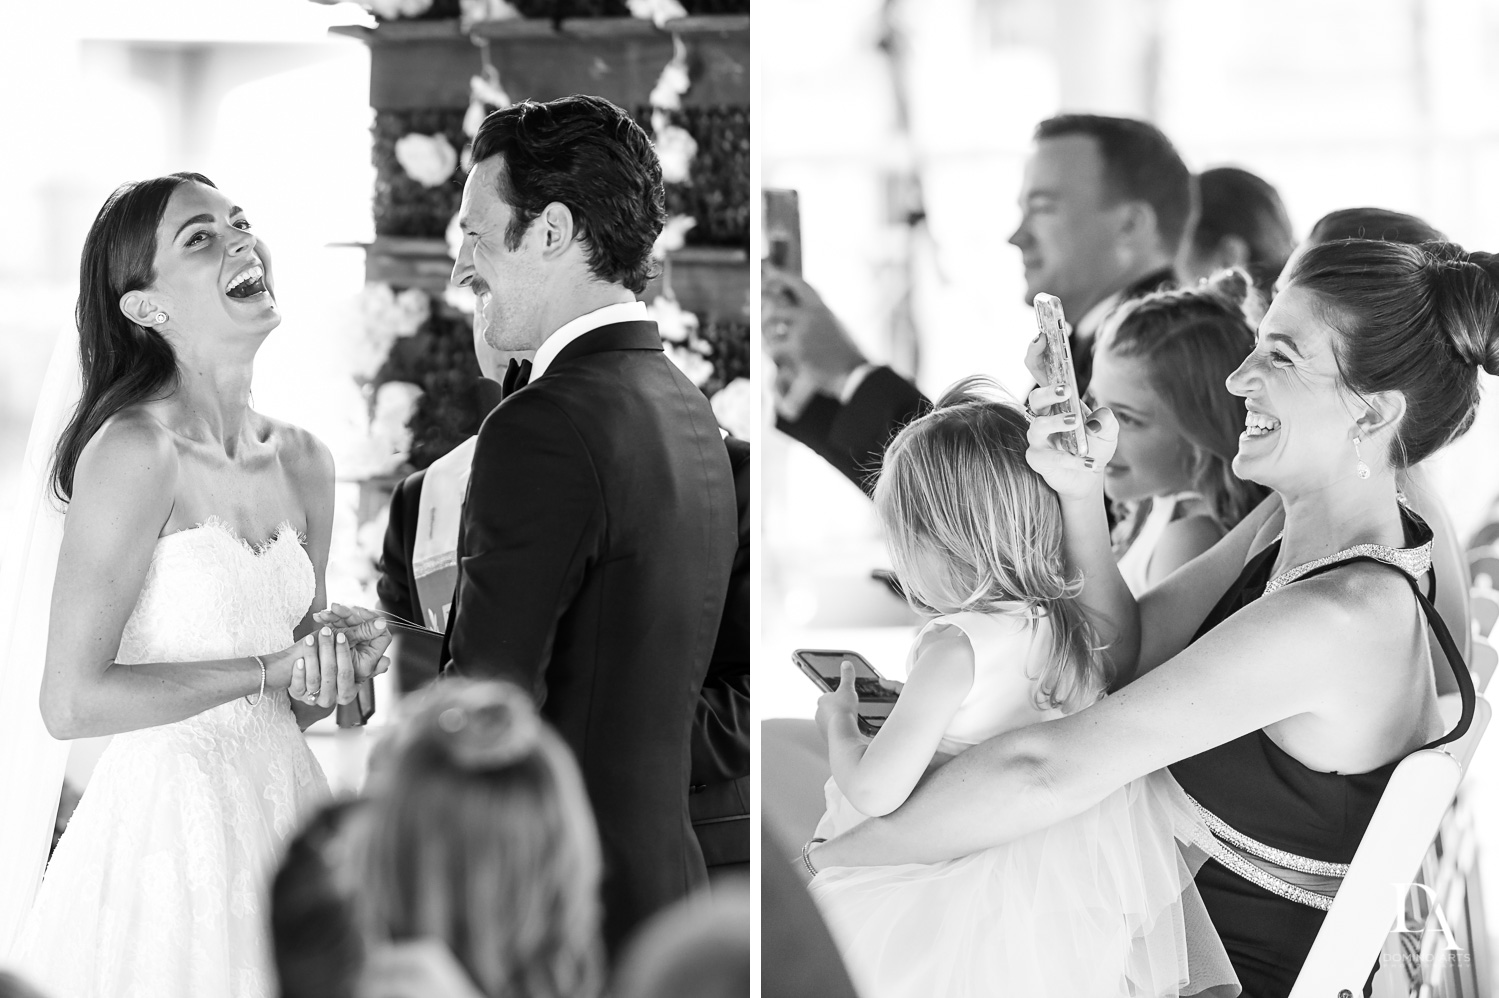 B&W ceremony at Stunning Golf Course Wedding at PGA National Palm Beach by Domino Arts Photography